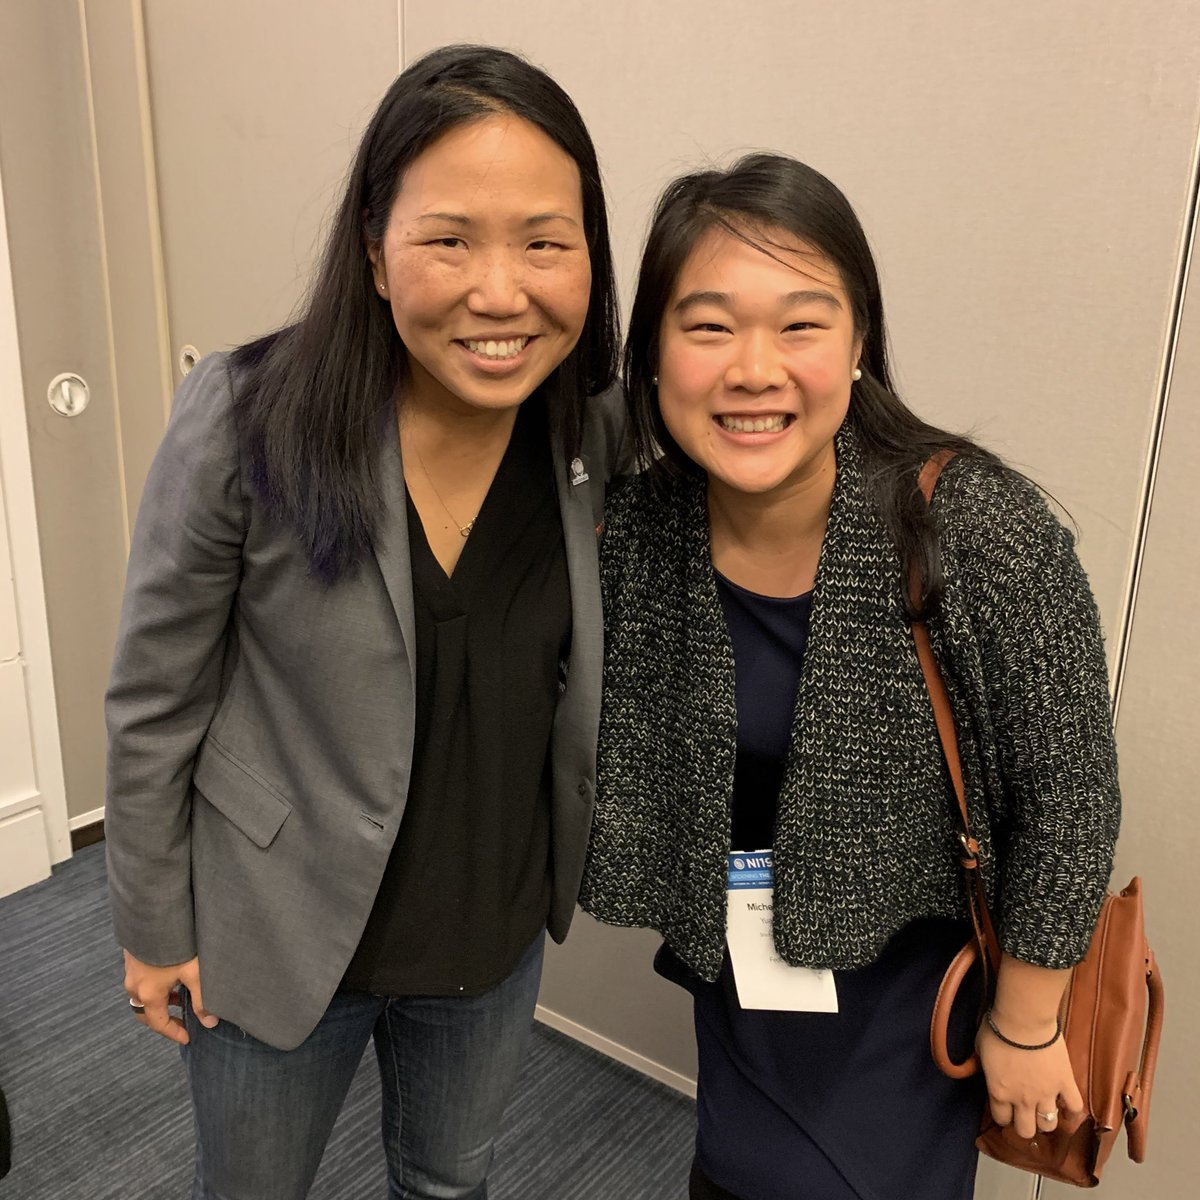 #TBT finally connecting in real life with @EarthAcumen of @FedEx at last week's @netimpact conference in Detroit! #Tweeps2Peeps #NI19 cc: @AndreaLearned @KoboriGrillsCSR @SusanHeaney